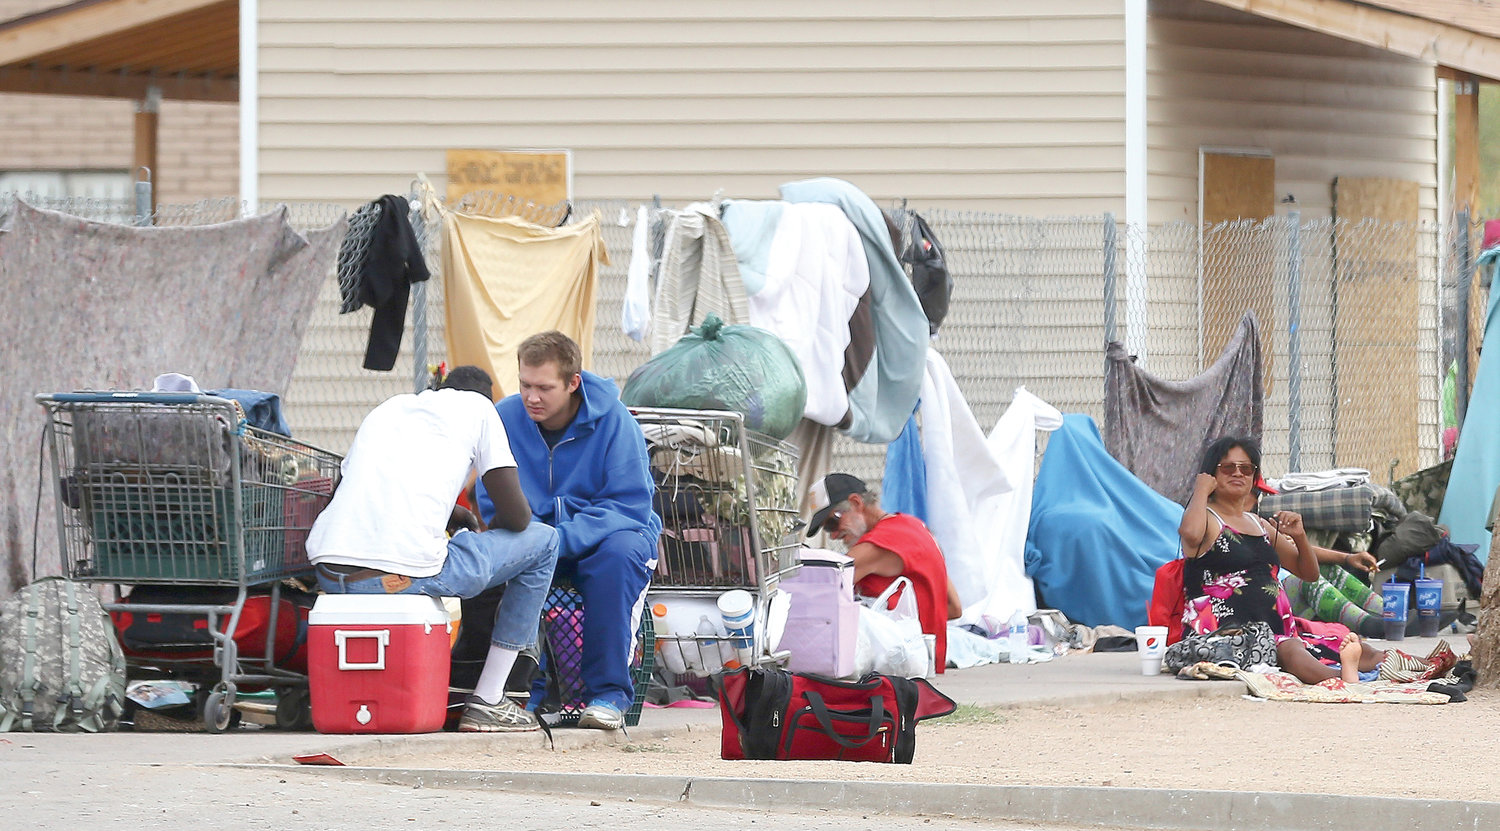 In this May 2, 2019 file photo, homeless people gather on the sidewalk at an encampment in Phoenix. Since 2015, the number of unsheltered homeless people living in the Valley has nearly tripled, according to the most recent count. Meanwhile, government and nonprofit groups are partnering to protect the community during the COVID-19 outbreak.